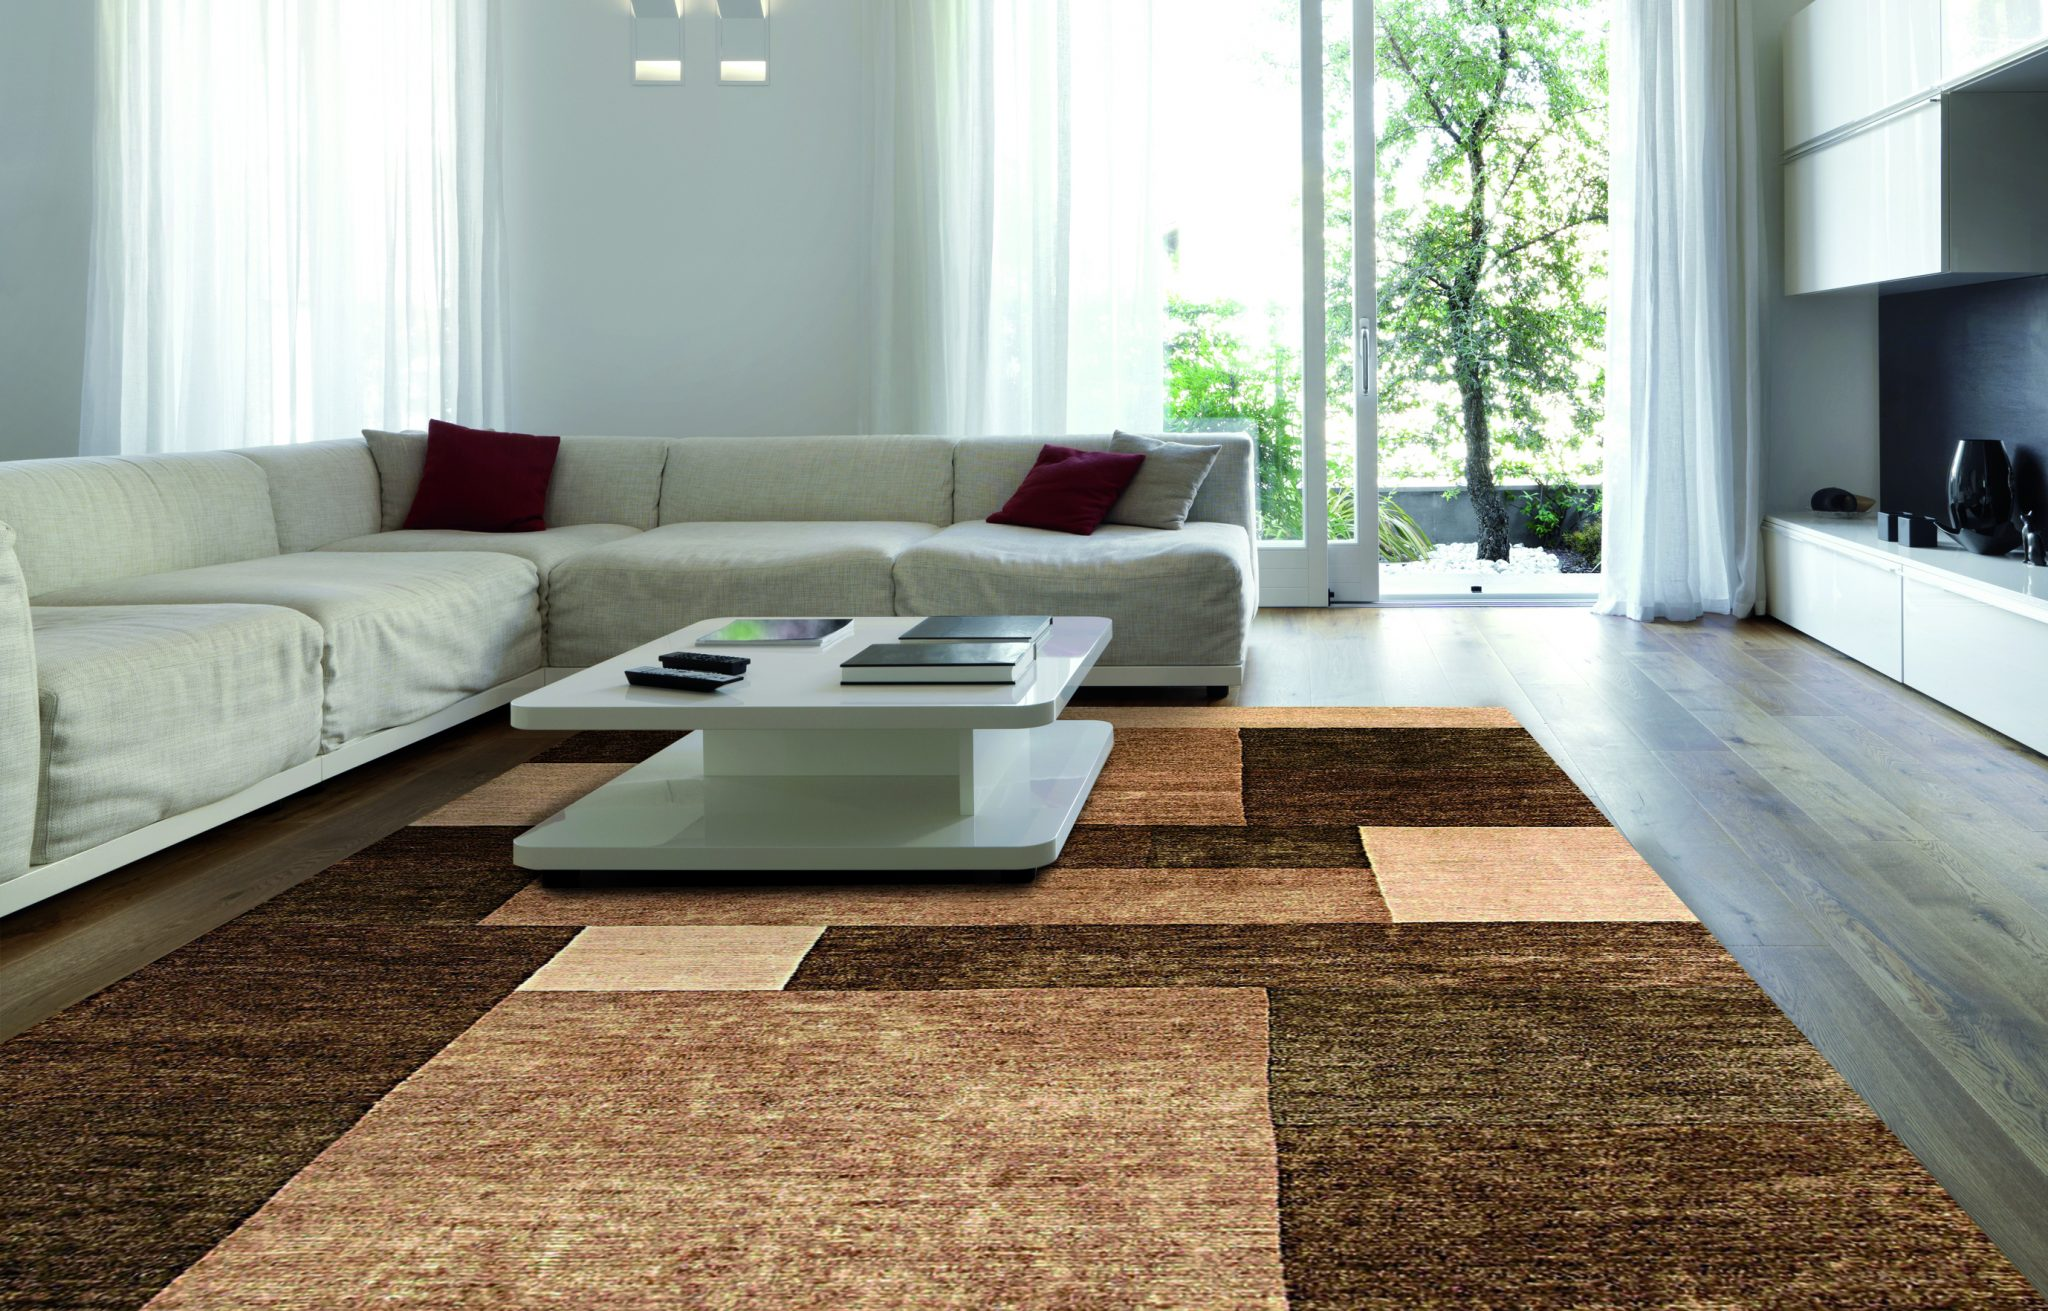 Decorate your house with carpets and rugs